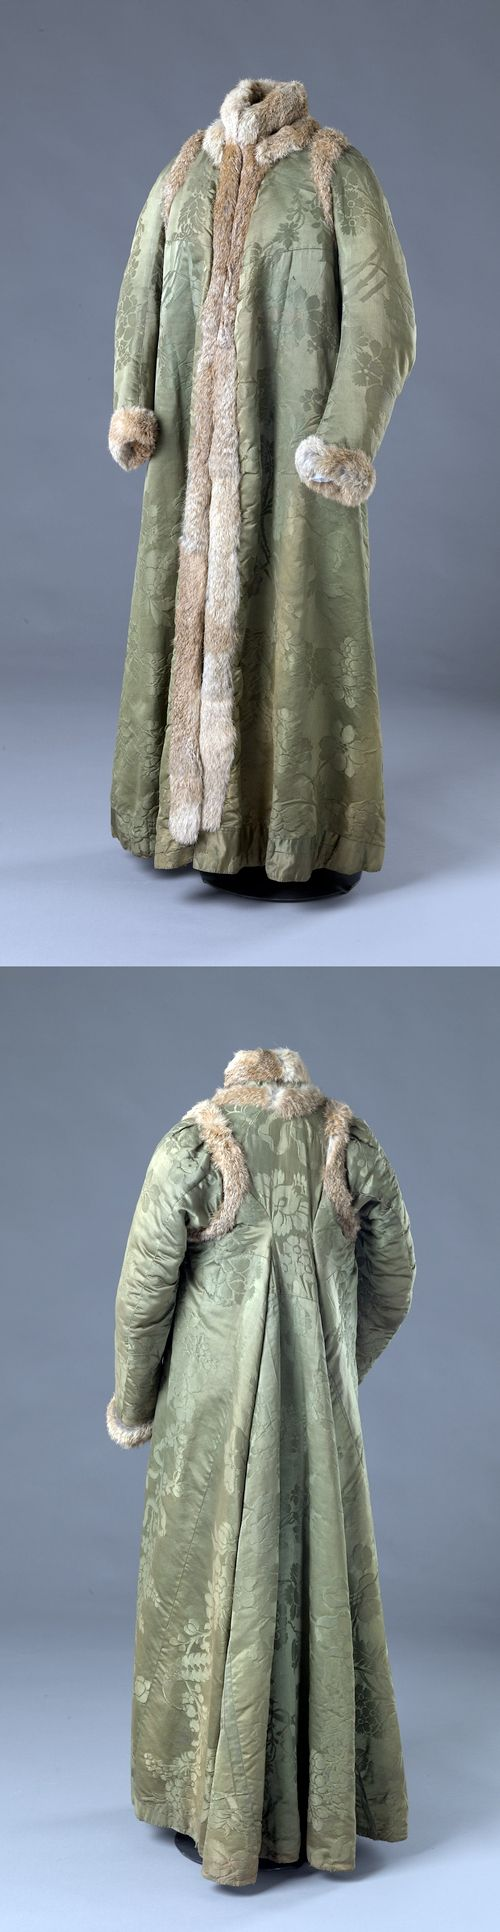 Coat  18th century  Nasjonalmuseet for Kunst, Arketketur, og Design